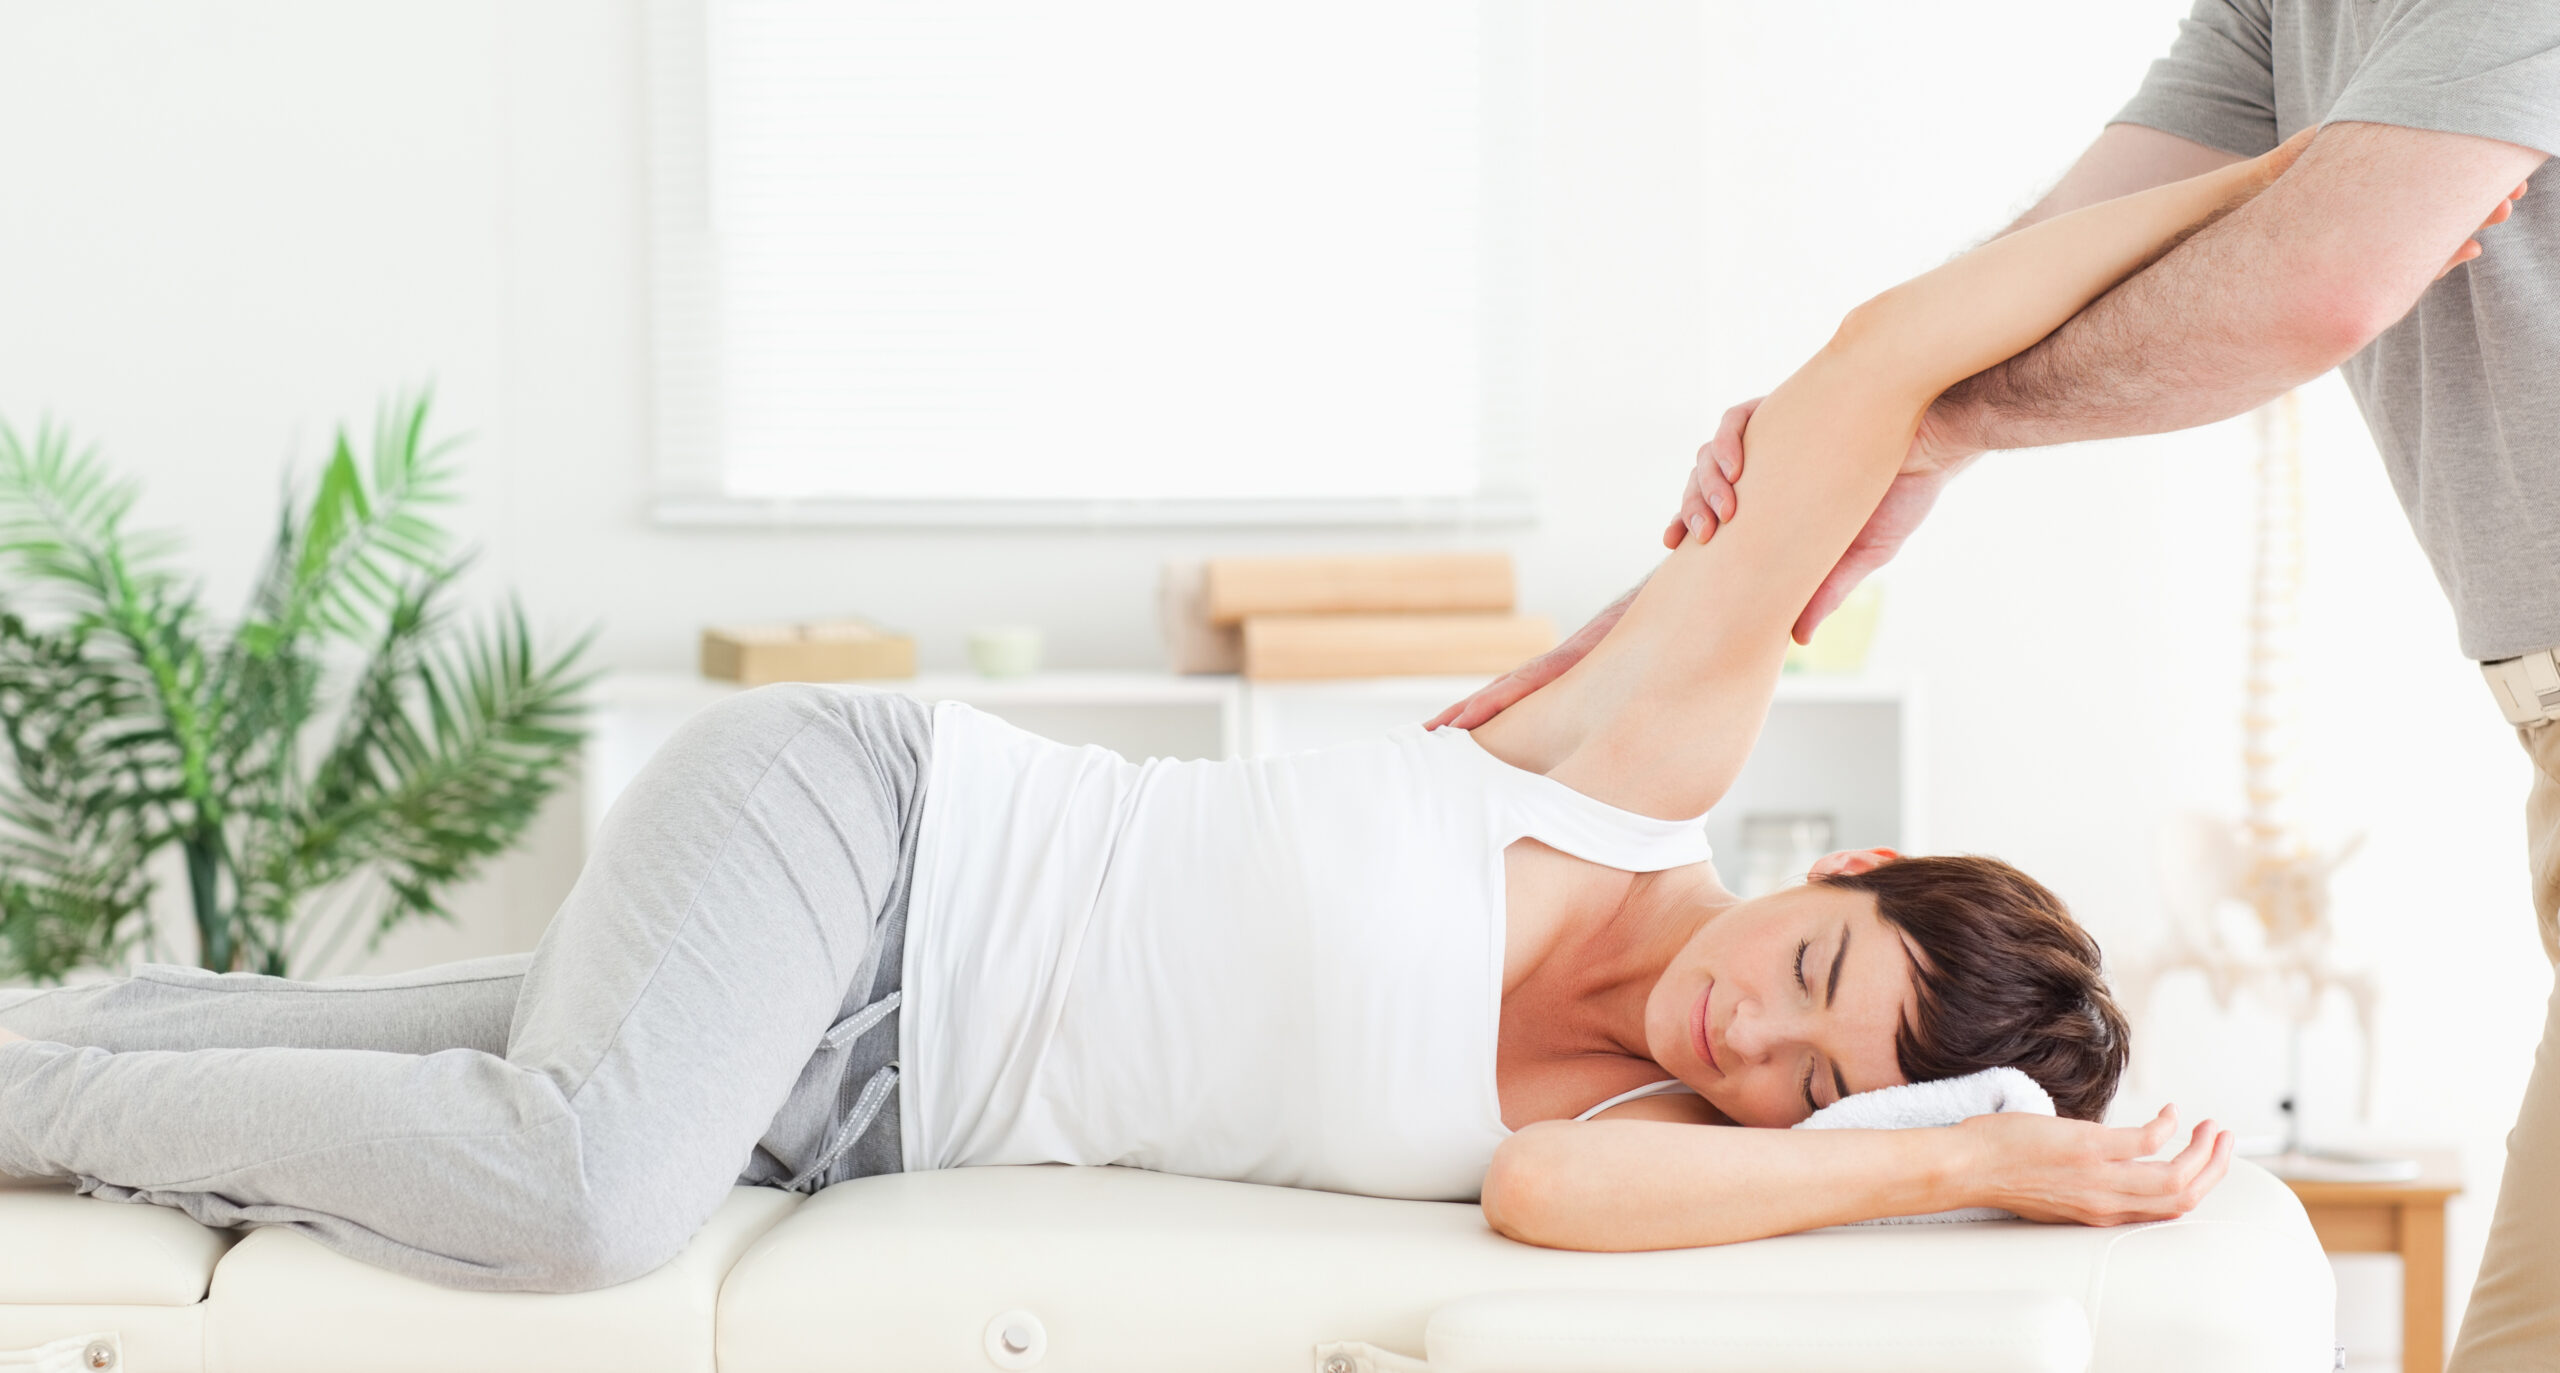 Massage therapist stretching woman's arm